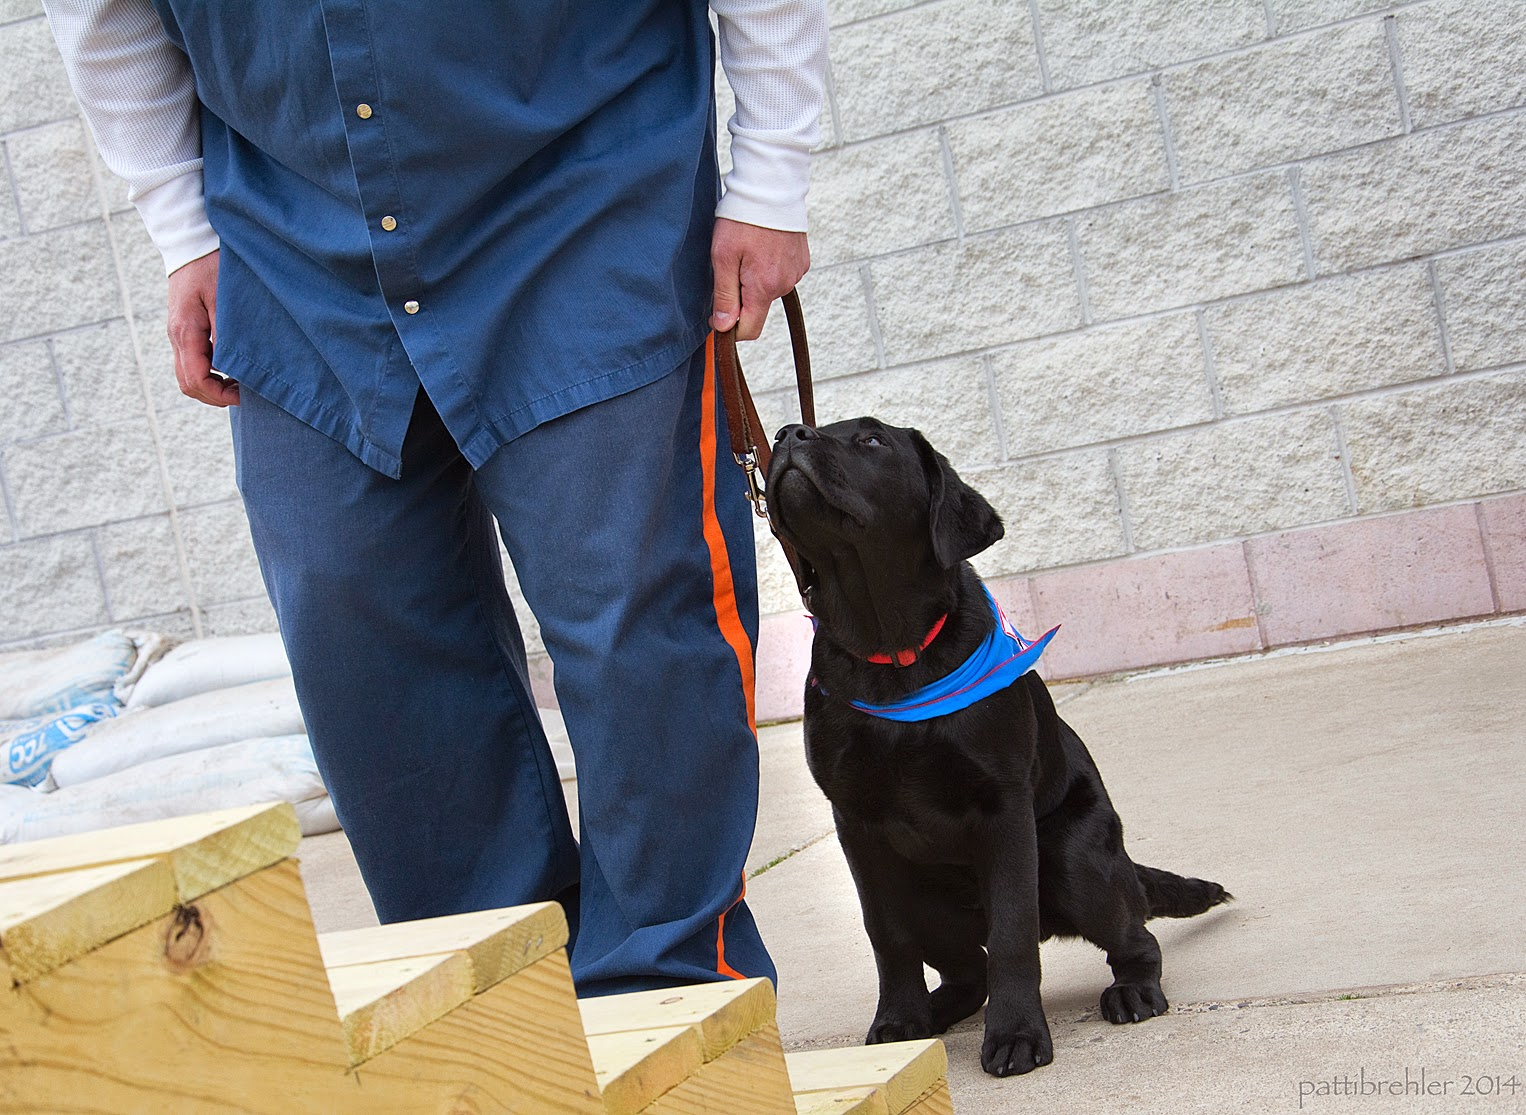 A small black lab puppy is sitting on the left side of a man dressed in the blue prison uniform. The man is visible only from the waist down. He is holding the puppy's leash lightly in his left hand at his side. The puppy is gazing upward toward the man, and is wearing the blue Future Leader Dog bandana. The pair are right in front of a set of wooden stairs, a white brick wall is behind them.